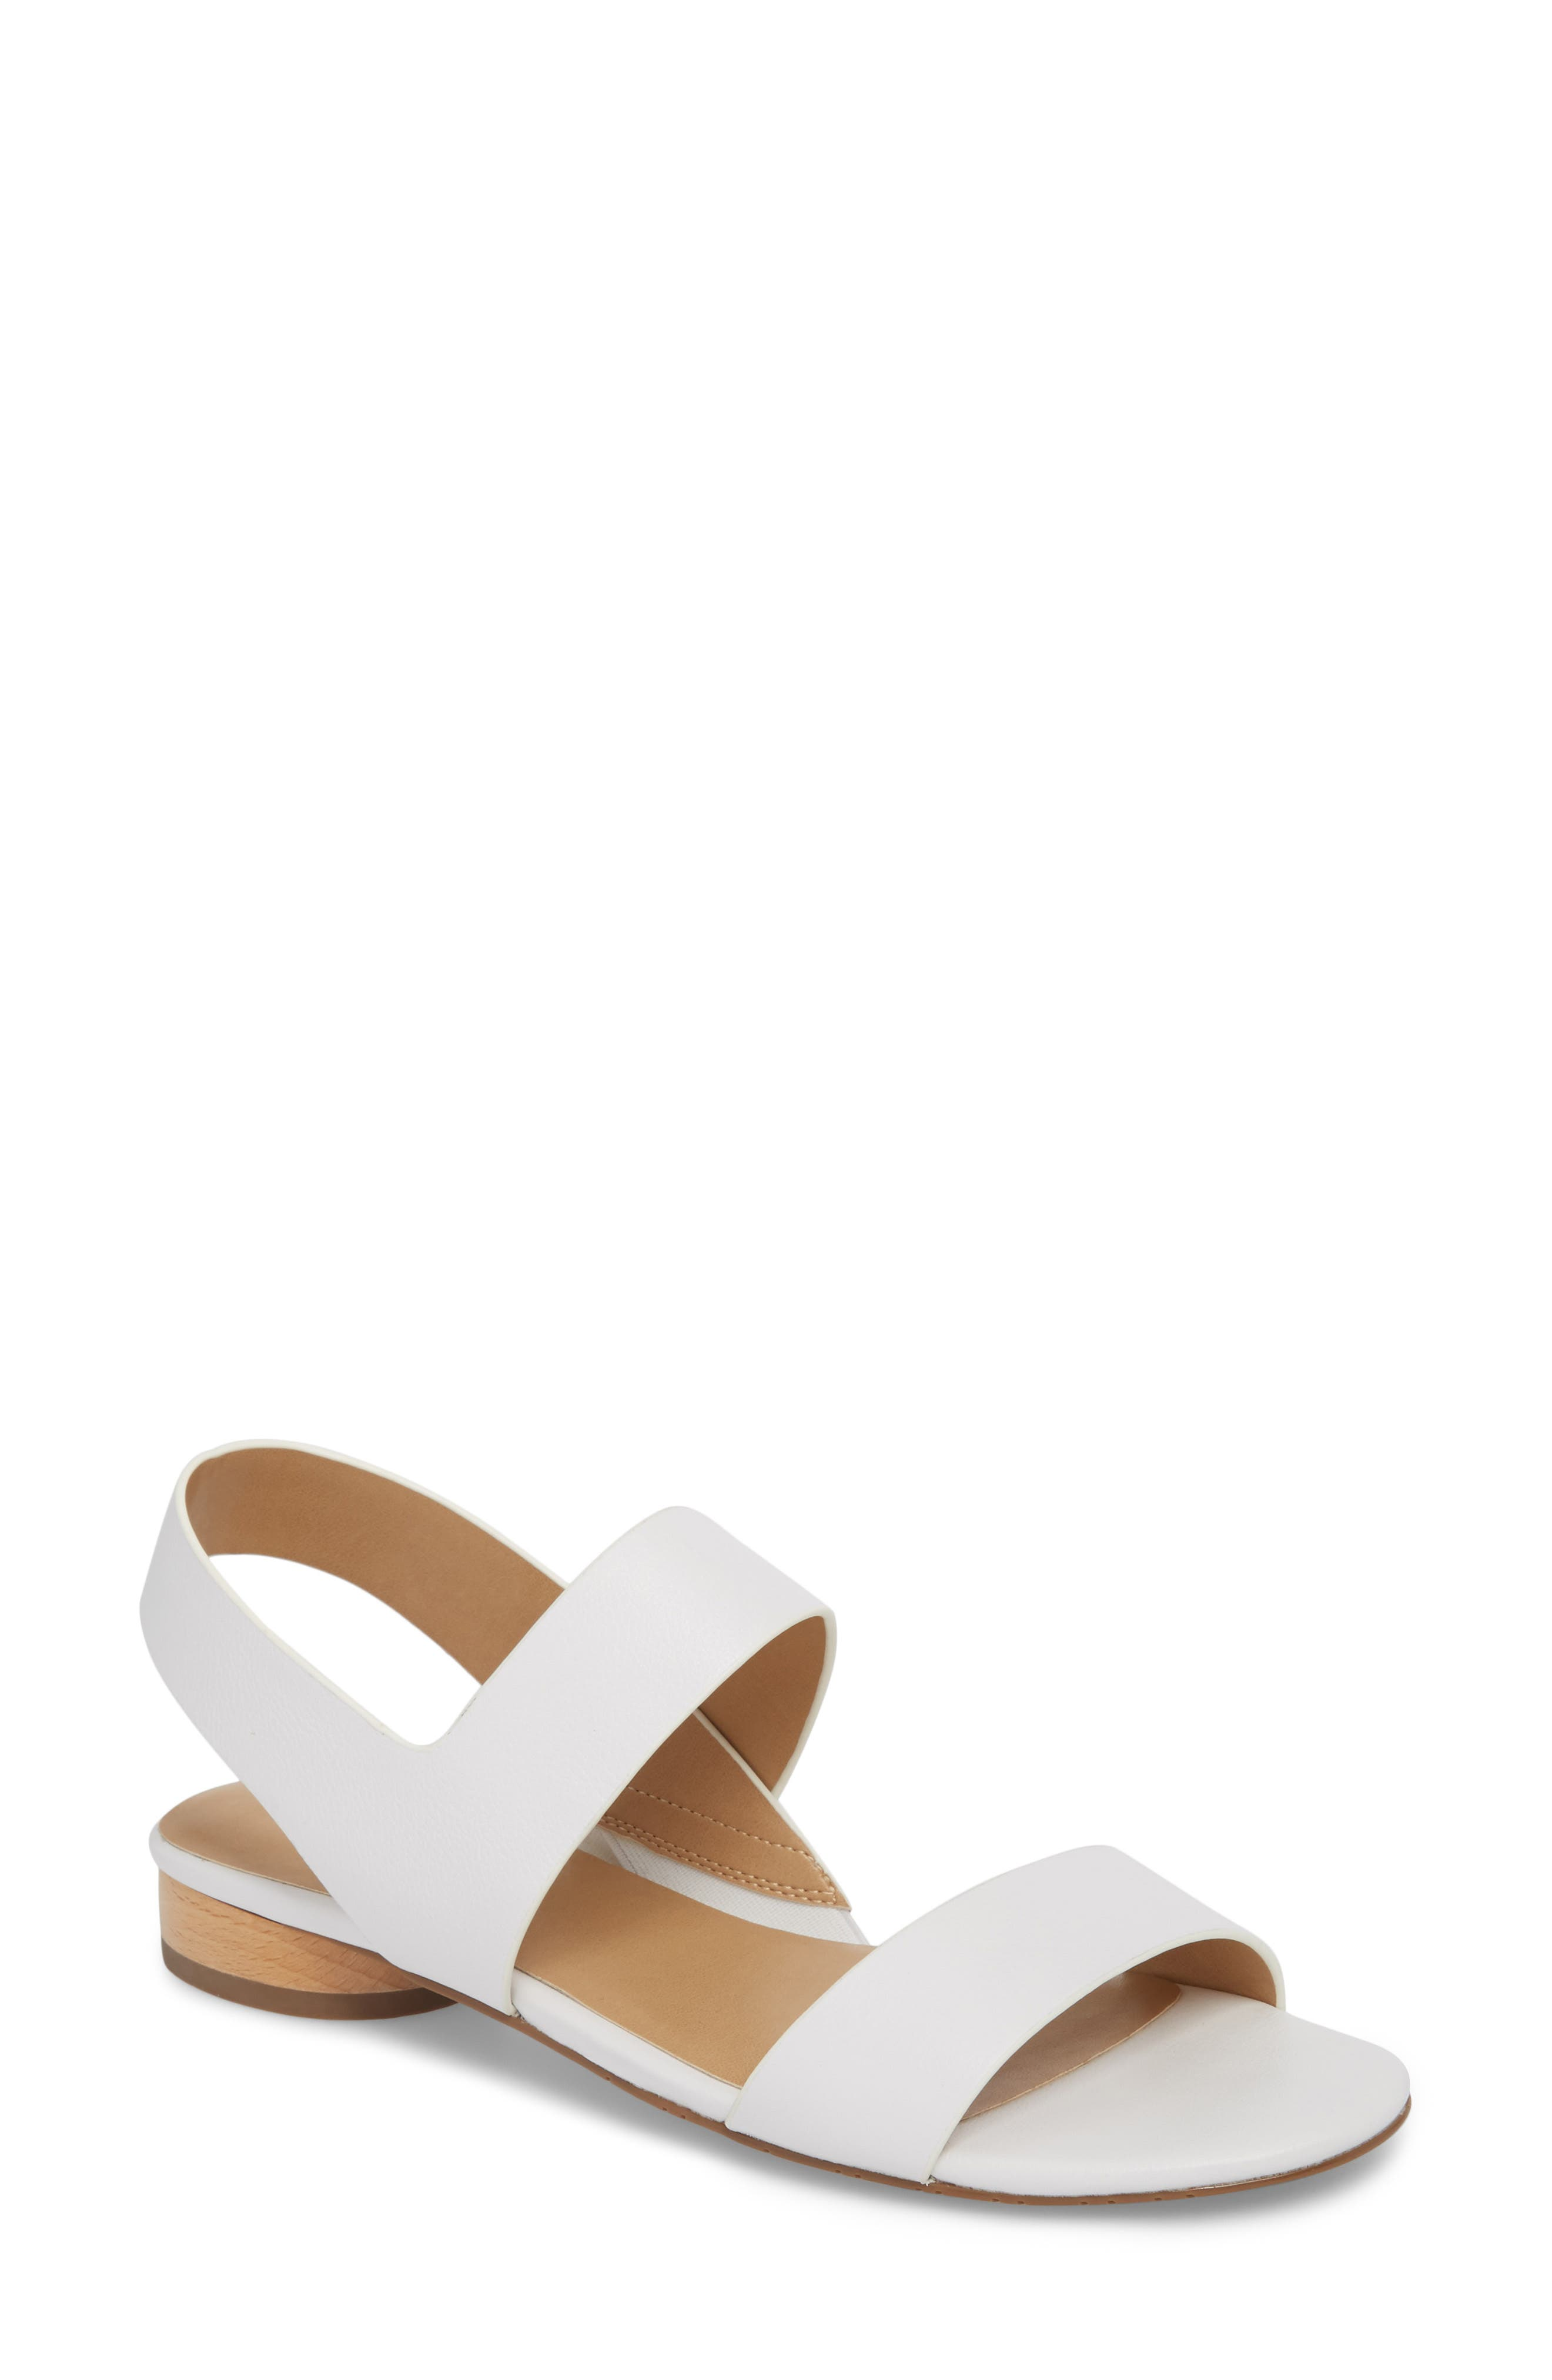 Blanka Sandal,                         Main,                         color, White Leather